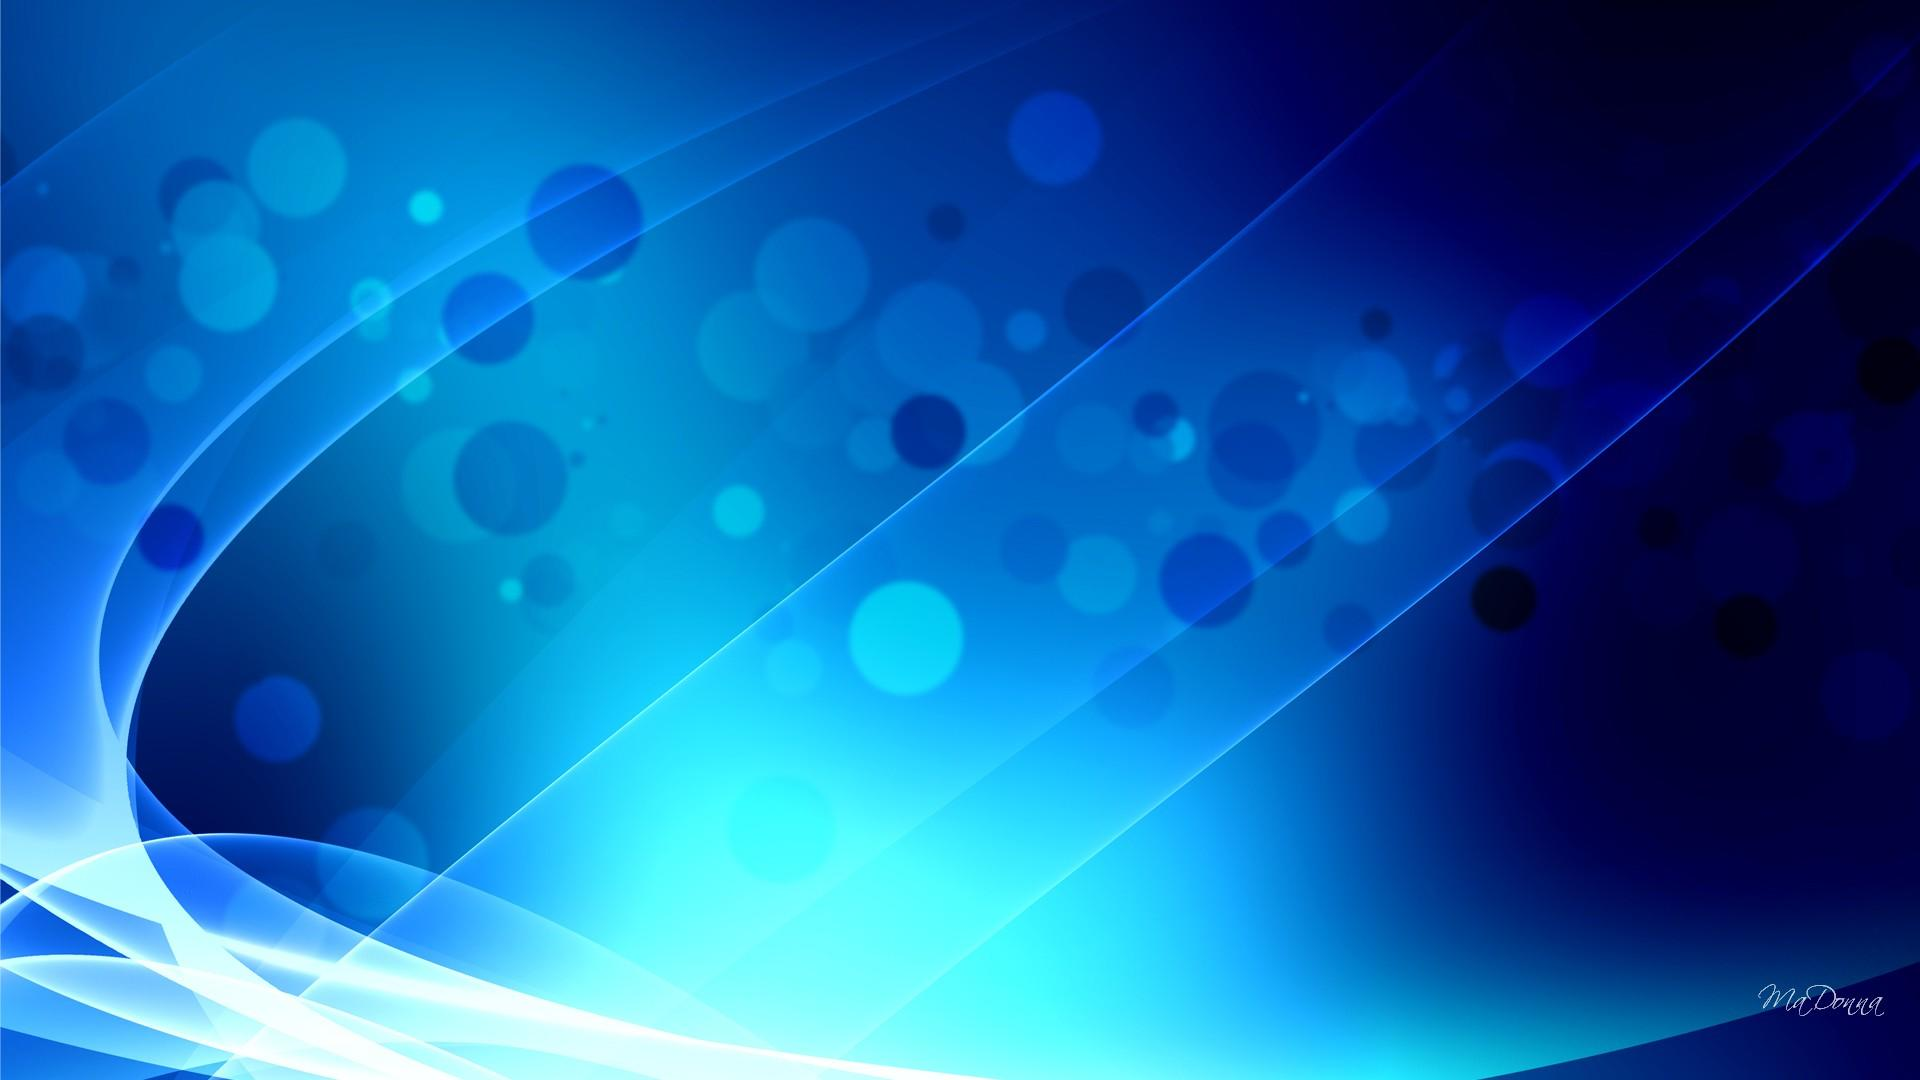 Blue Abstract wallpaper 1920x1080 57221 1920x1080